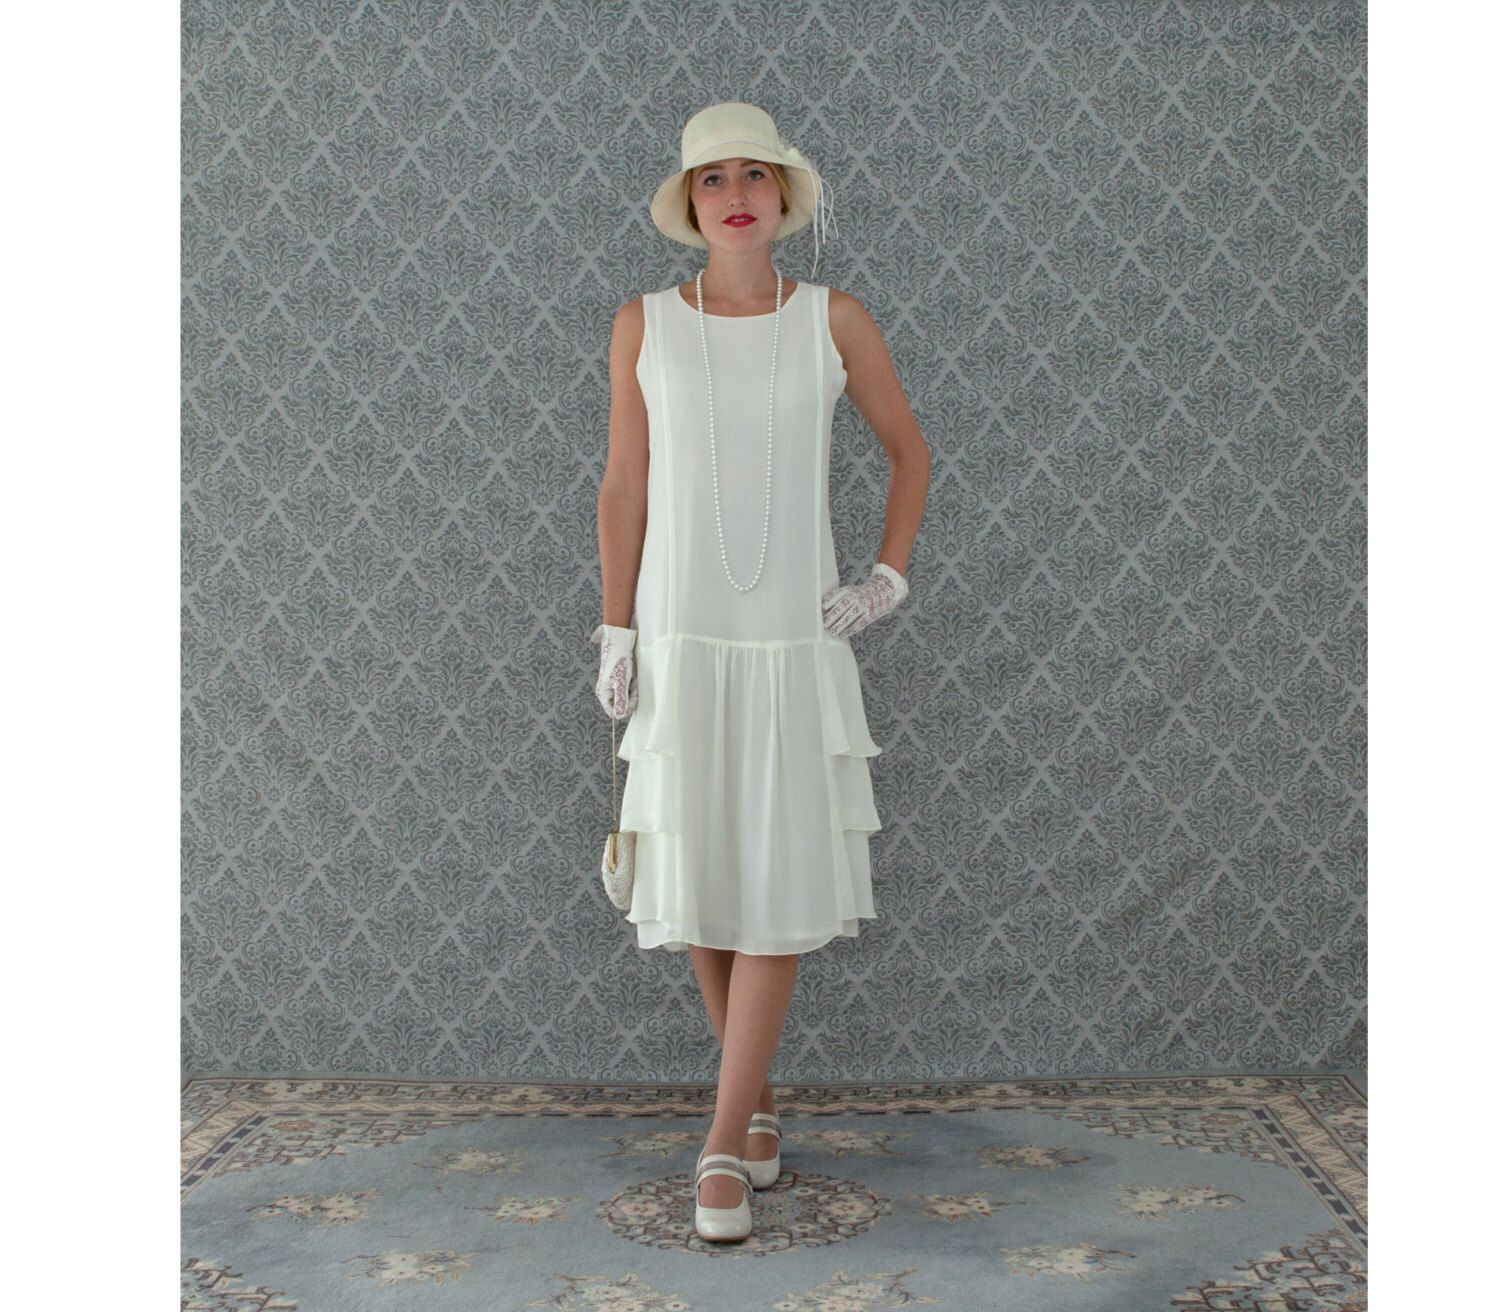 A darling 1920s-inspired dress in cream with tiered skirt, Roaring ...